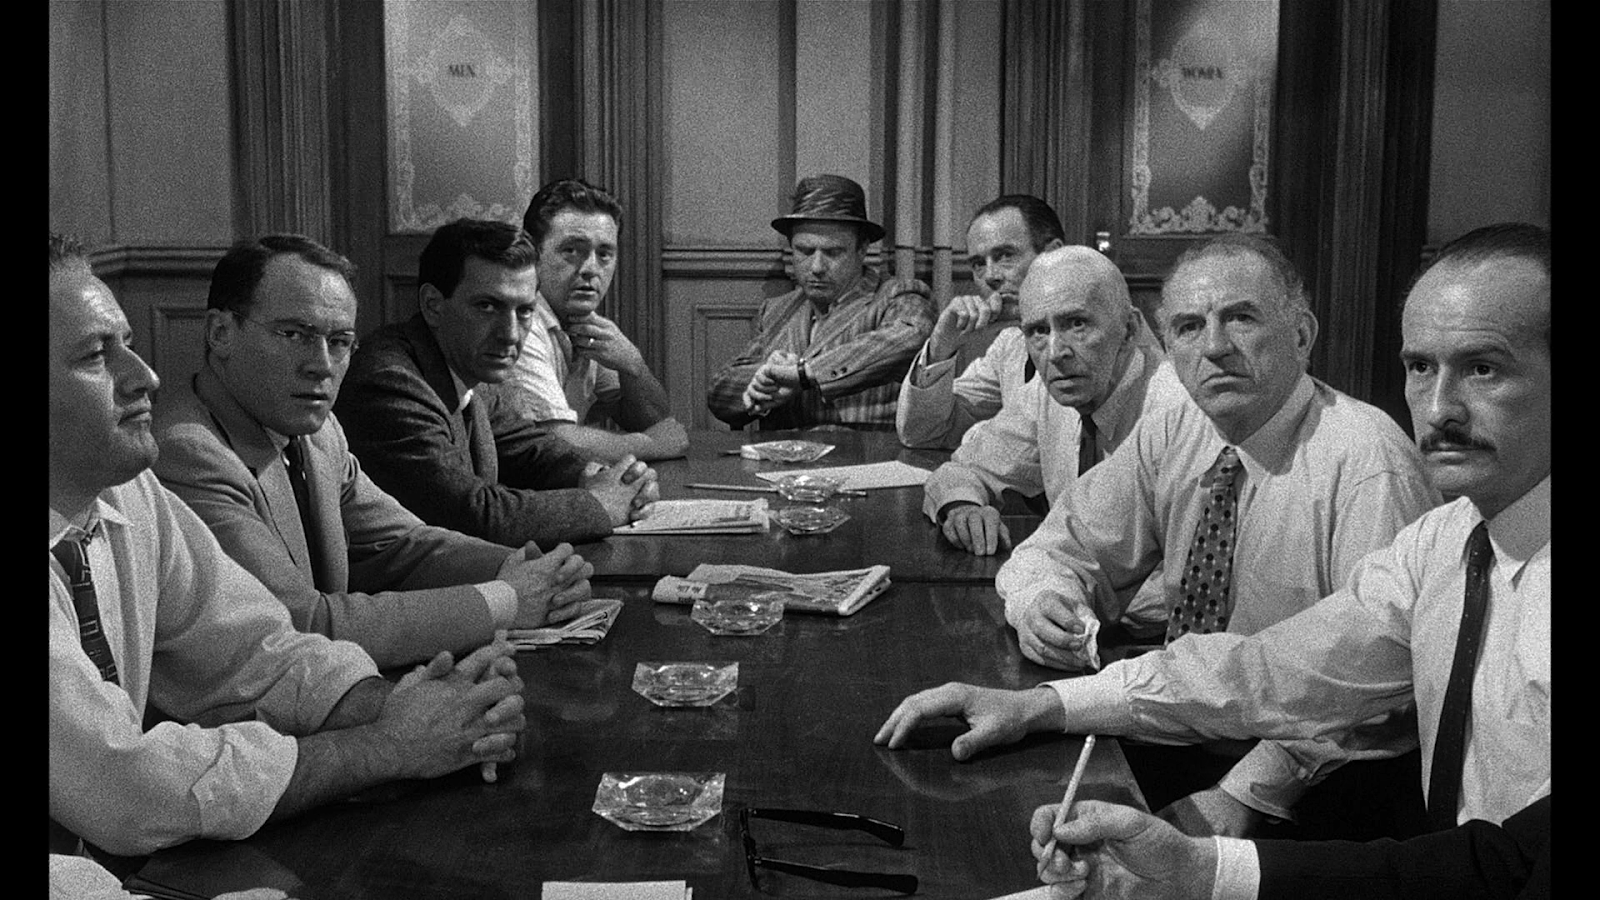 12 Angry Men Movie image Wallpapers